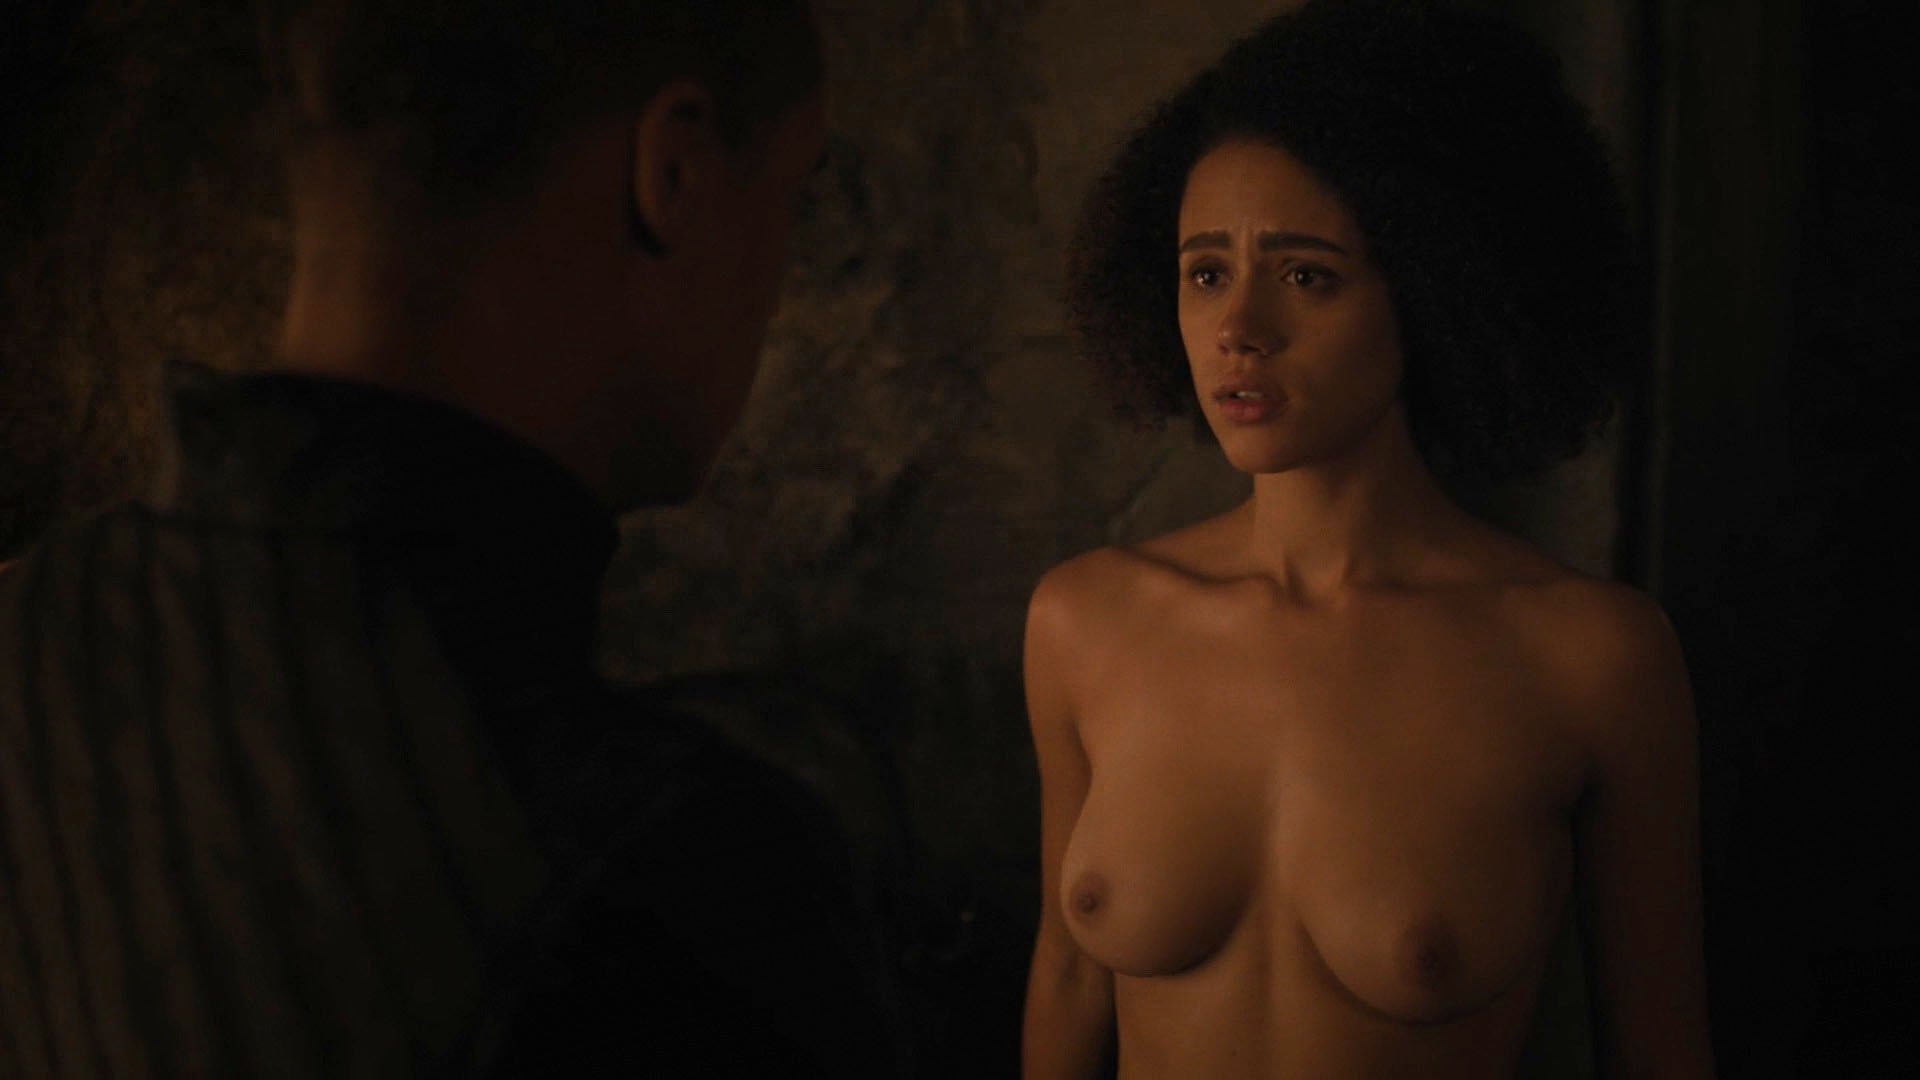 Nude Video Celebs  Nathalie Emmanuel Nude - Game Of Thrones S07E02 2017-3055